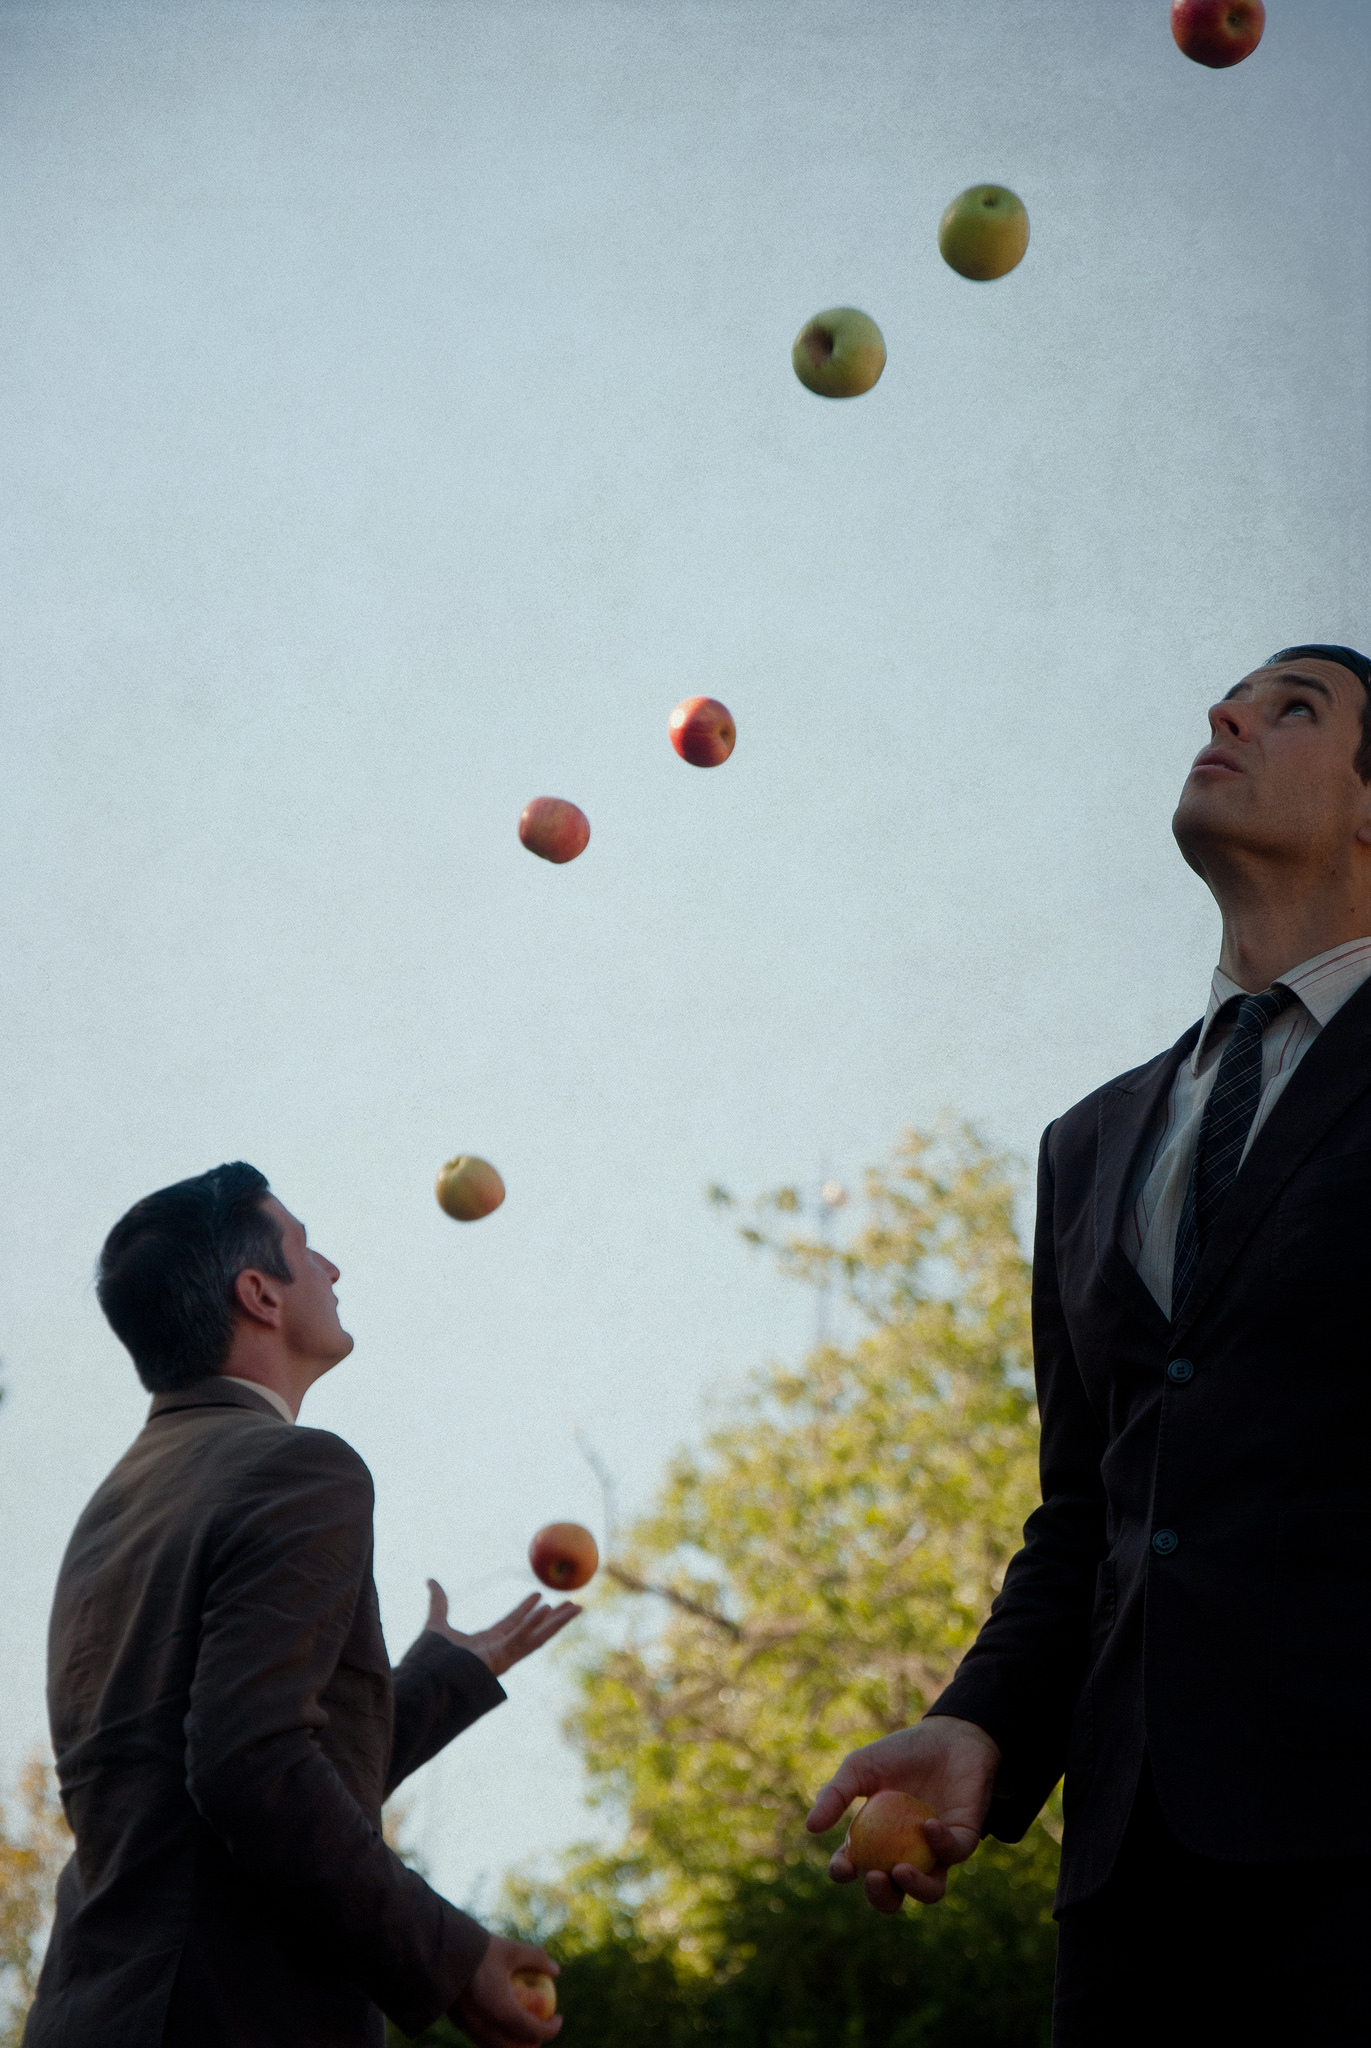 Two men wearing suites juggle apples